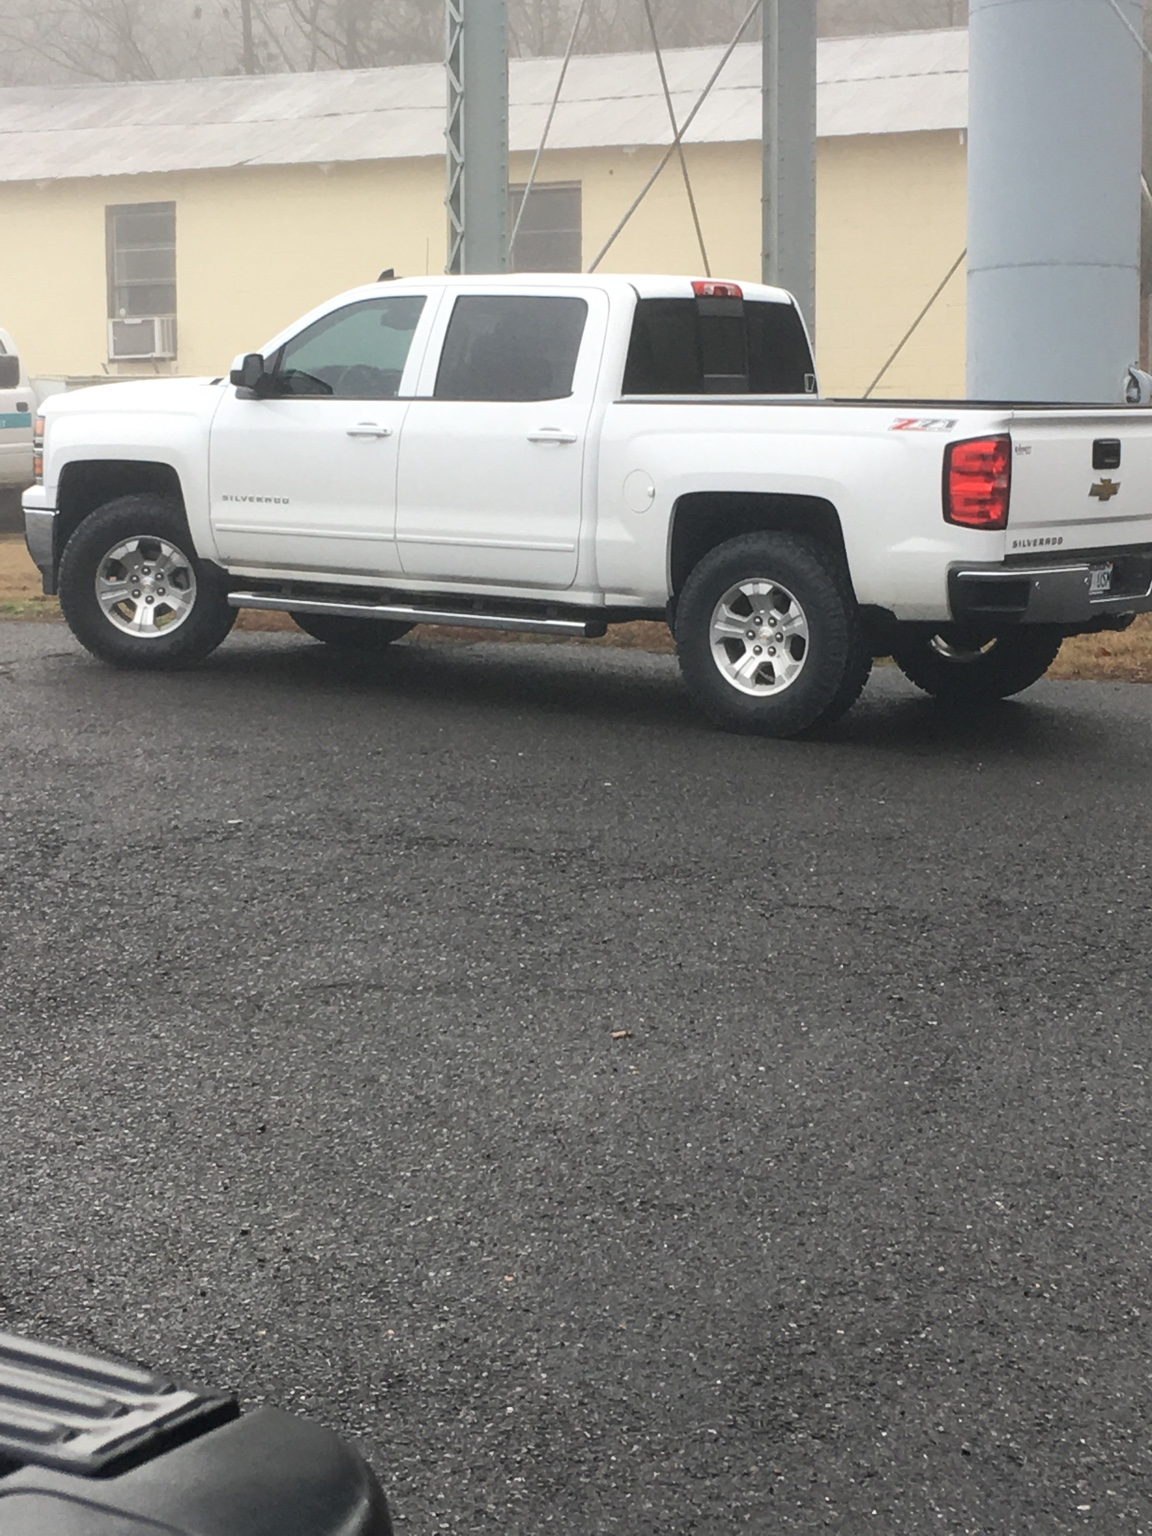 """285 75 17's under 2.5""""F and 1.75""""R lift - 2014 / 2015 ..."""